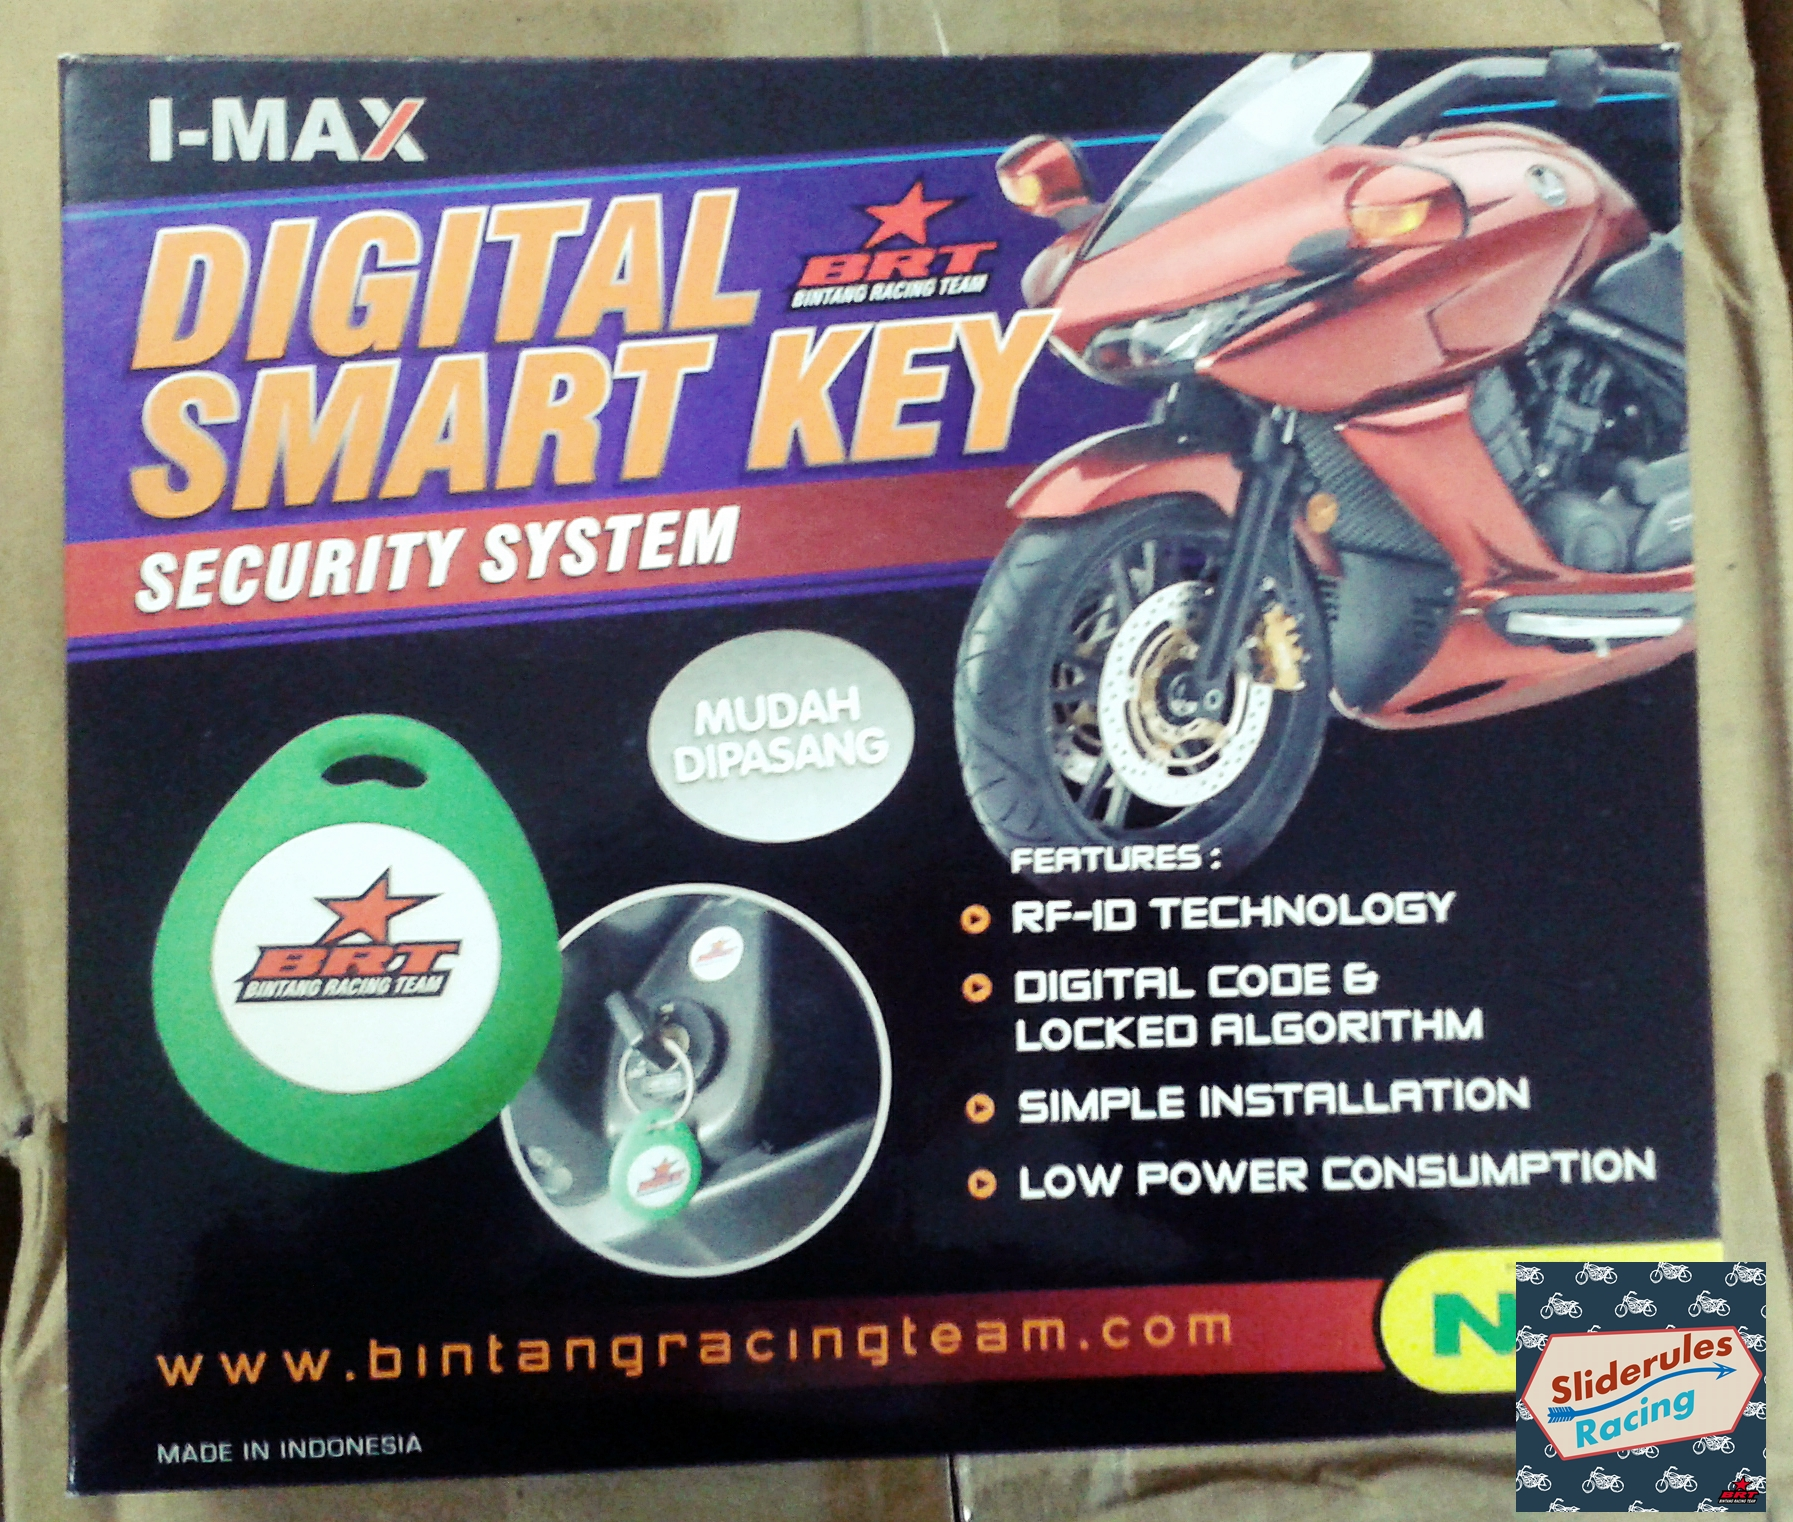 Alarm Motor Digital BRT New CB 150 R